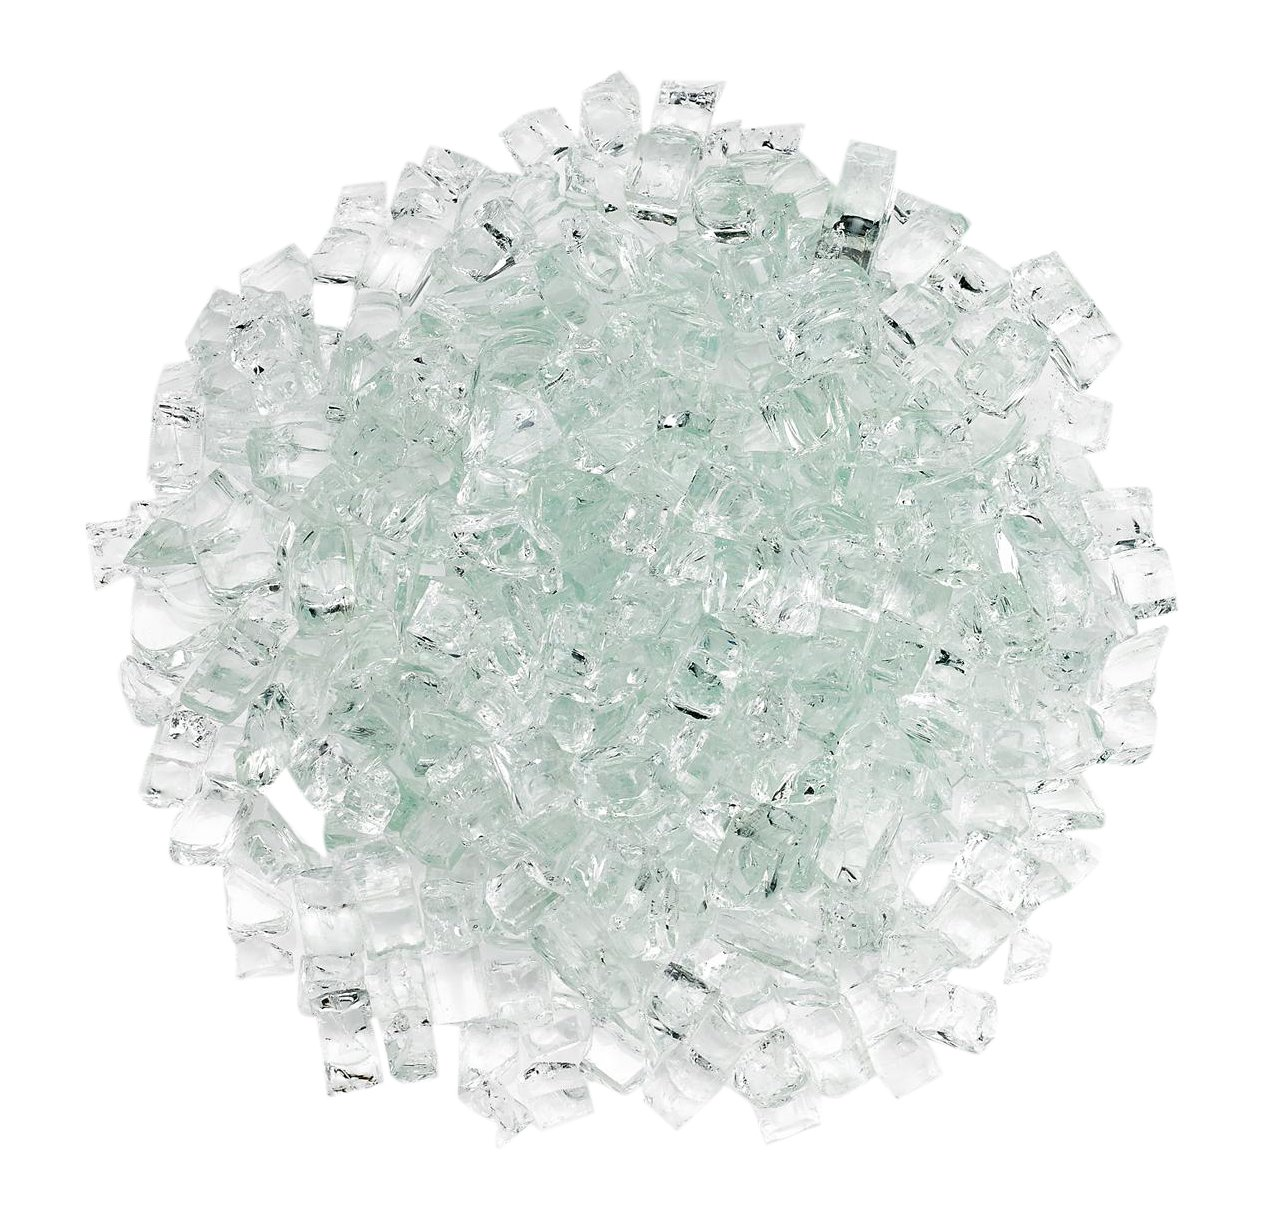 American Fireglass Fire Glass with Fireplace Glass and Fire Pit Glass, 5-Pound